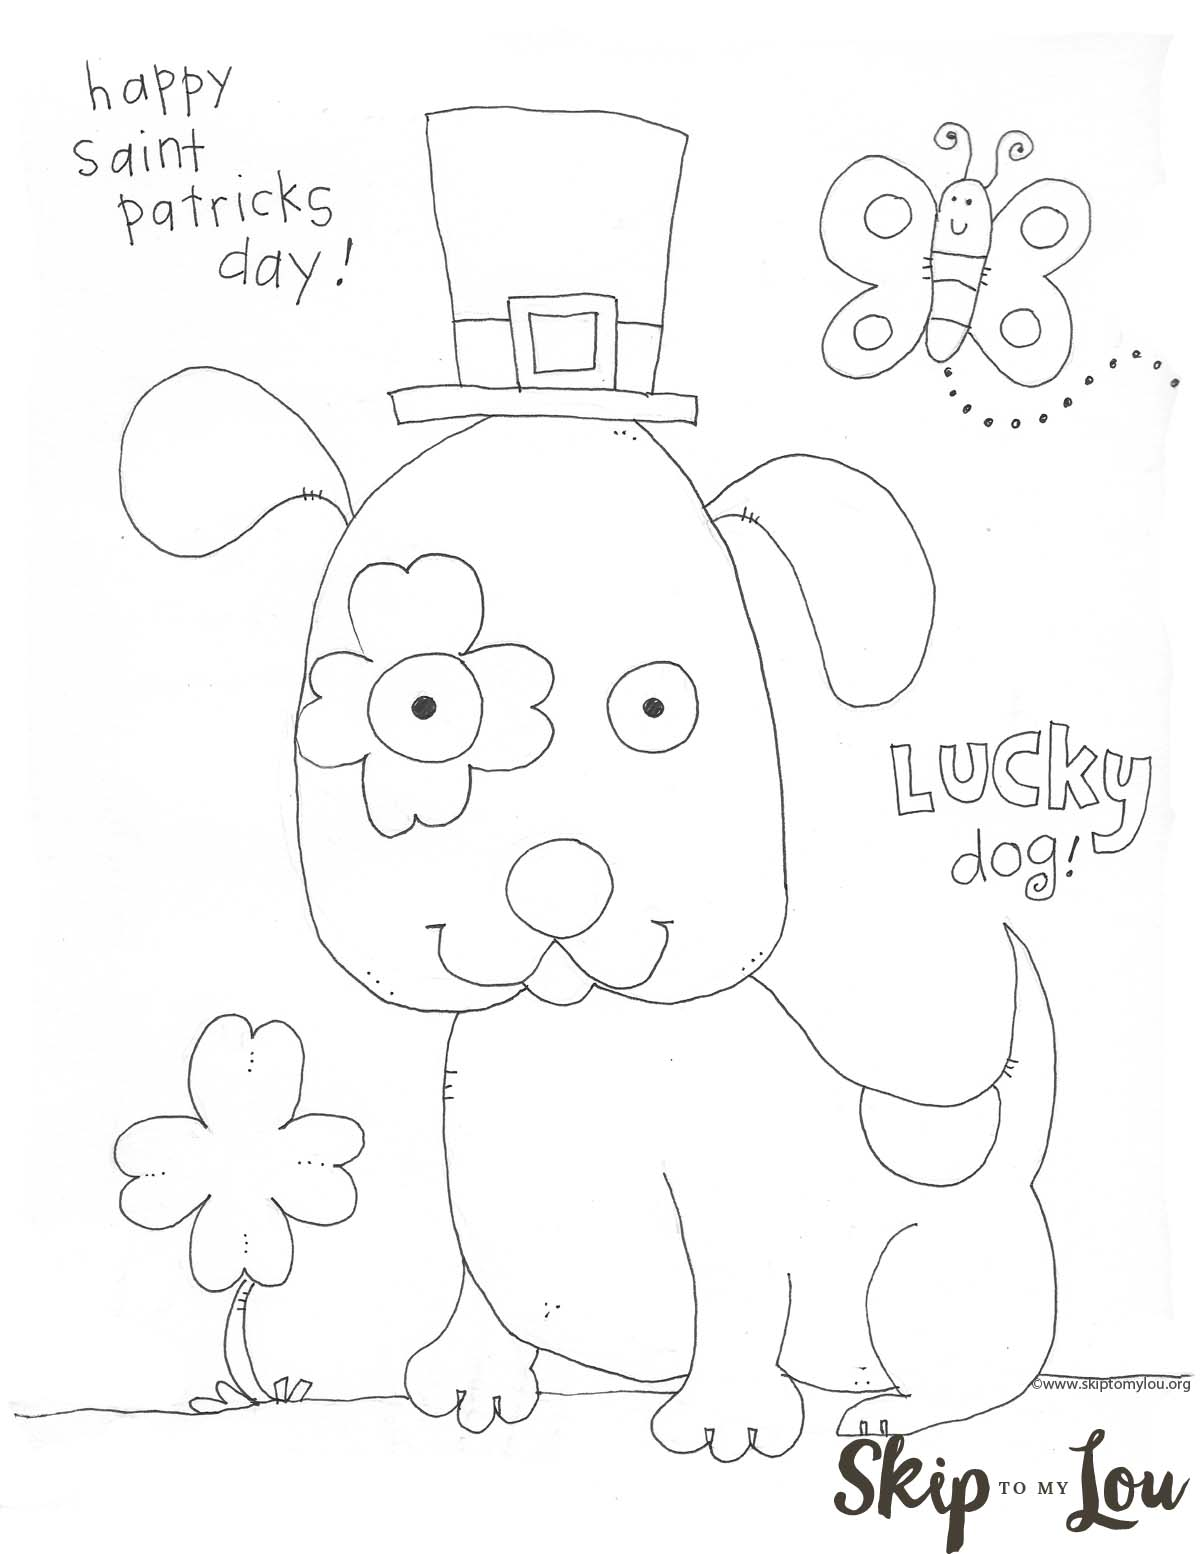 St Patricks Day Coloring Page For Preschoolers